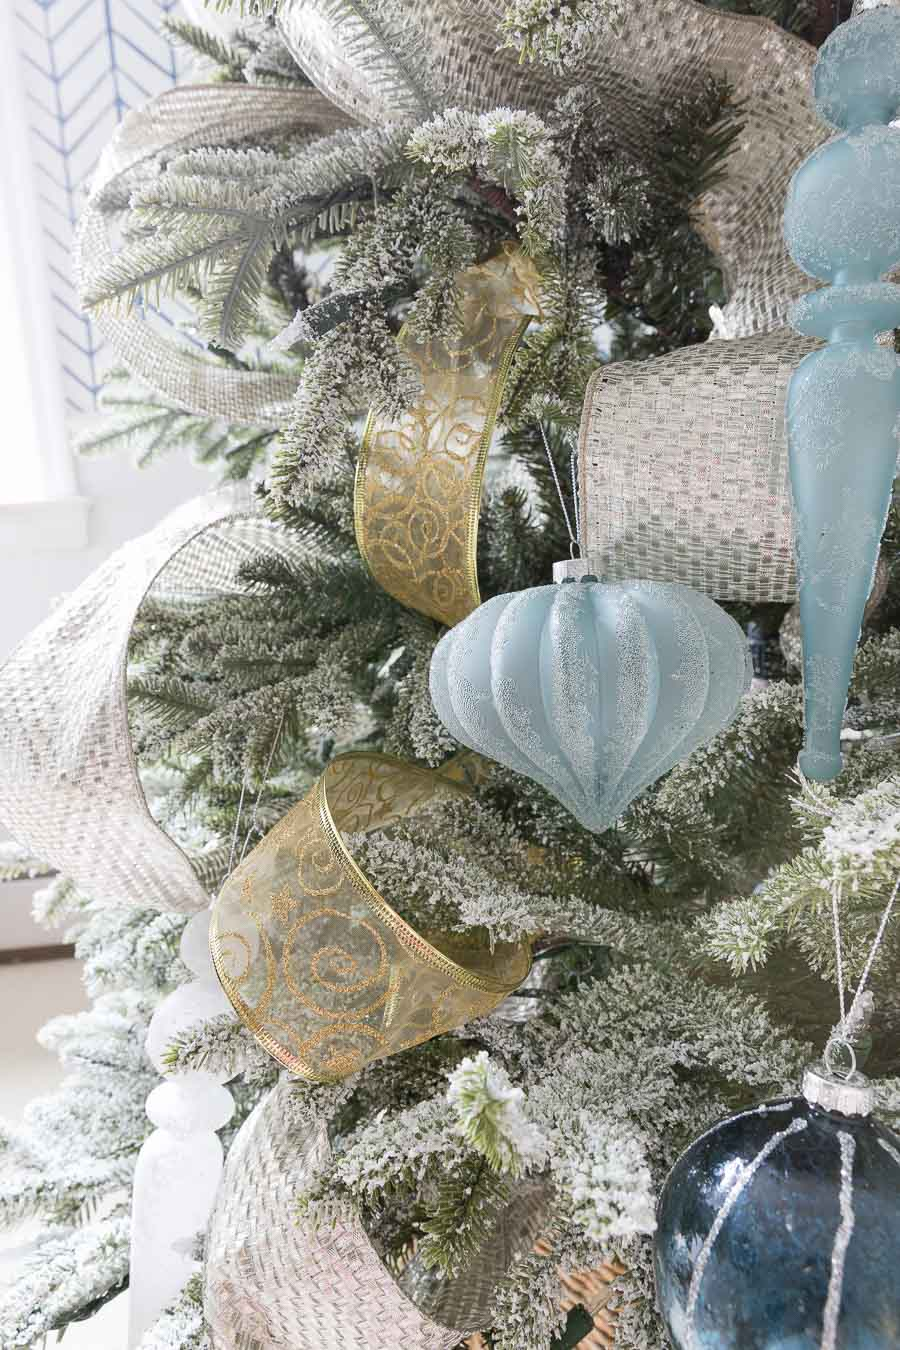 Where to find the best ribbon for decorating your Christmas tree!